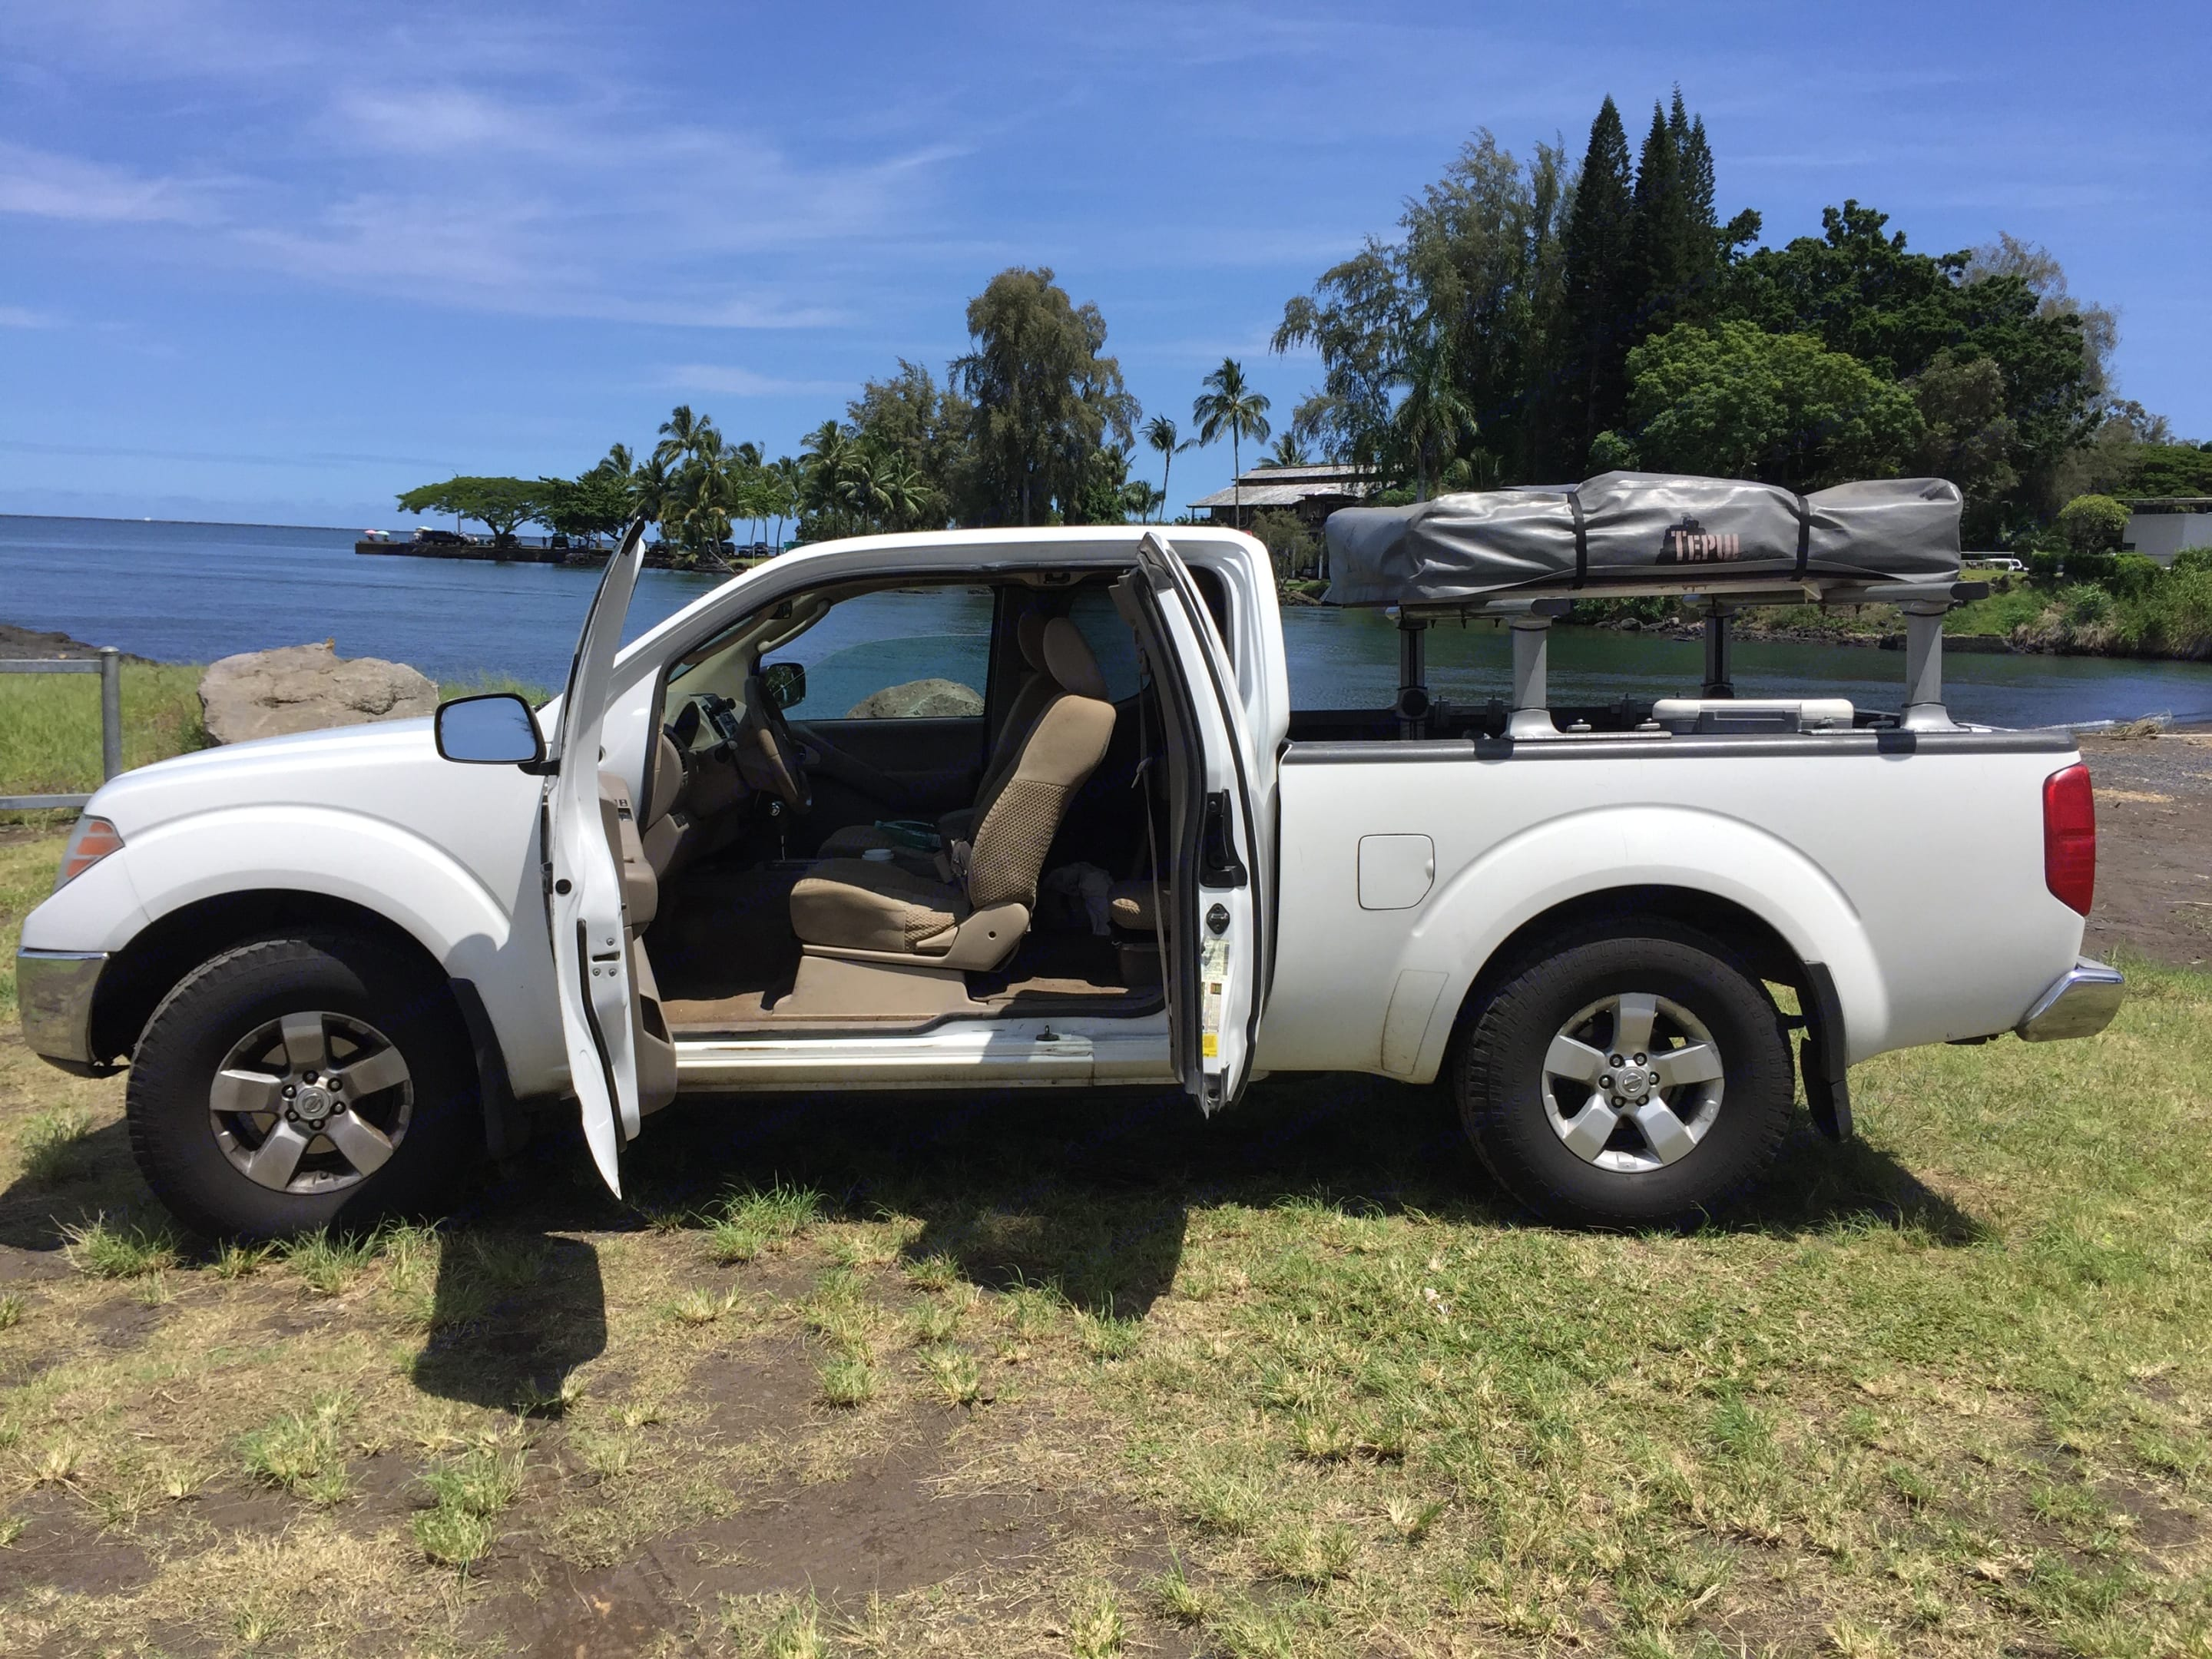 Packs up easily for fun in the sun!. Nissan Nissan Frontier King Cab 4x4 2010